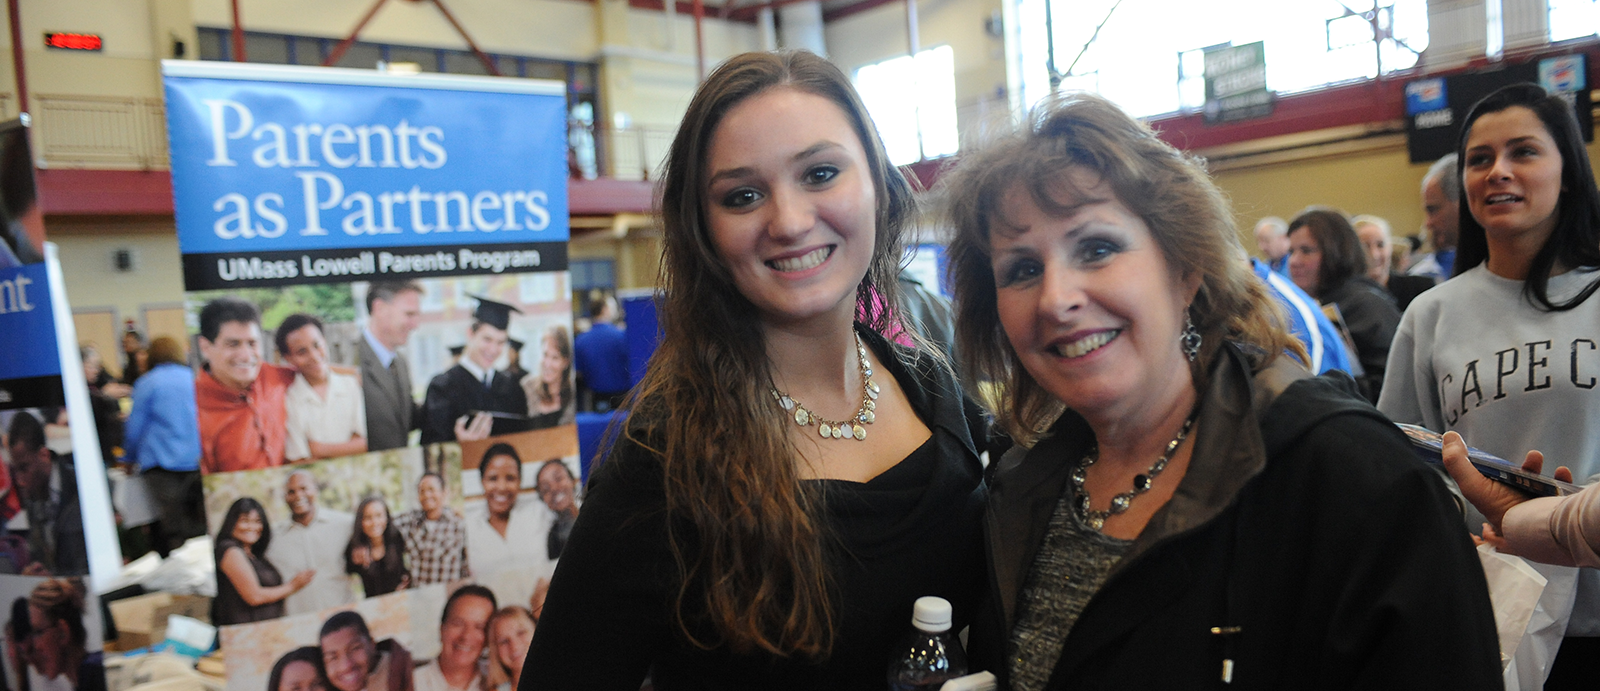 Mom and daughter at UMass Lowell orientation